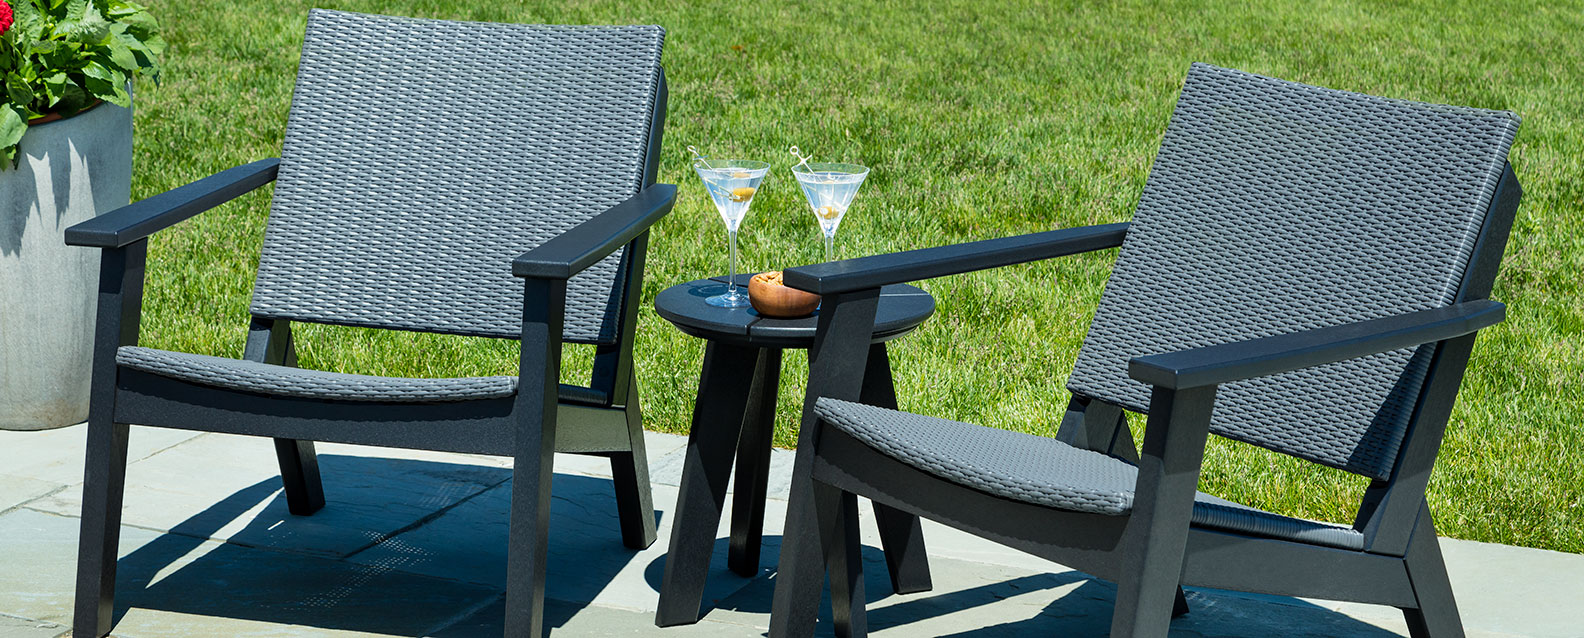 adirondack chairs recycled materials shower chair and commode seaside casual mad fusion chat | summer house patio